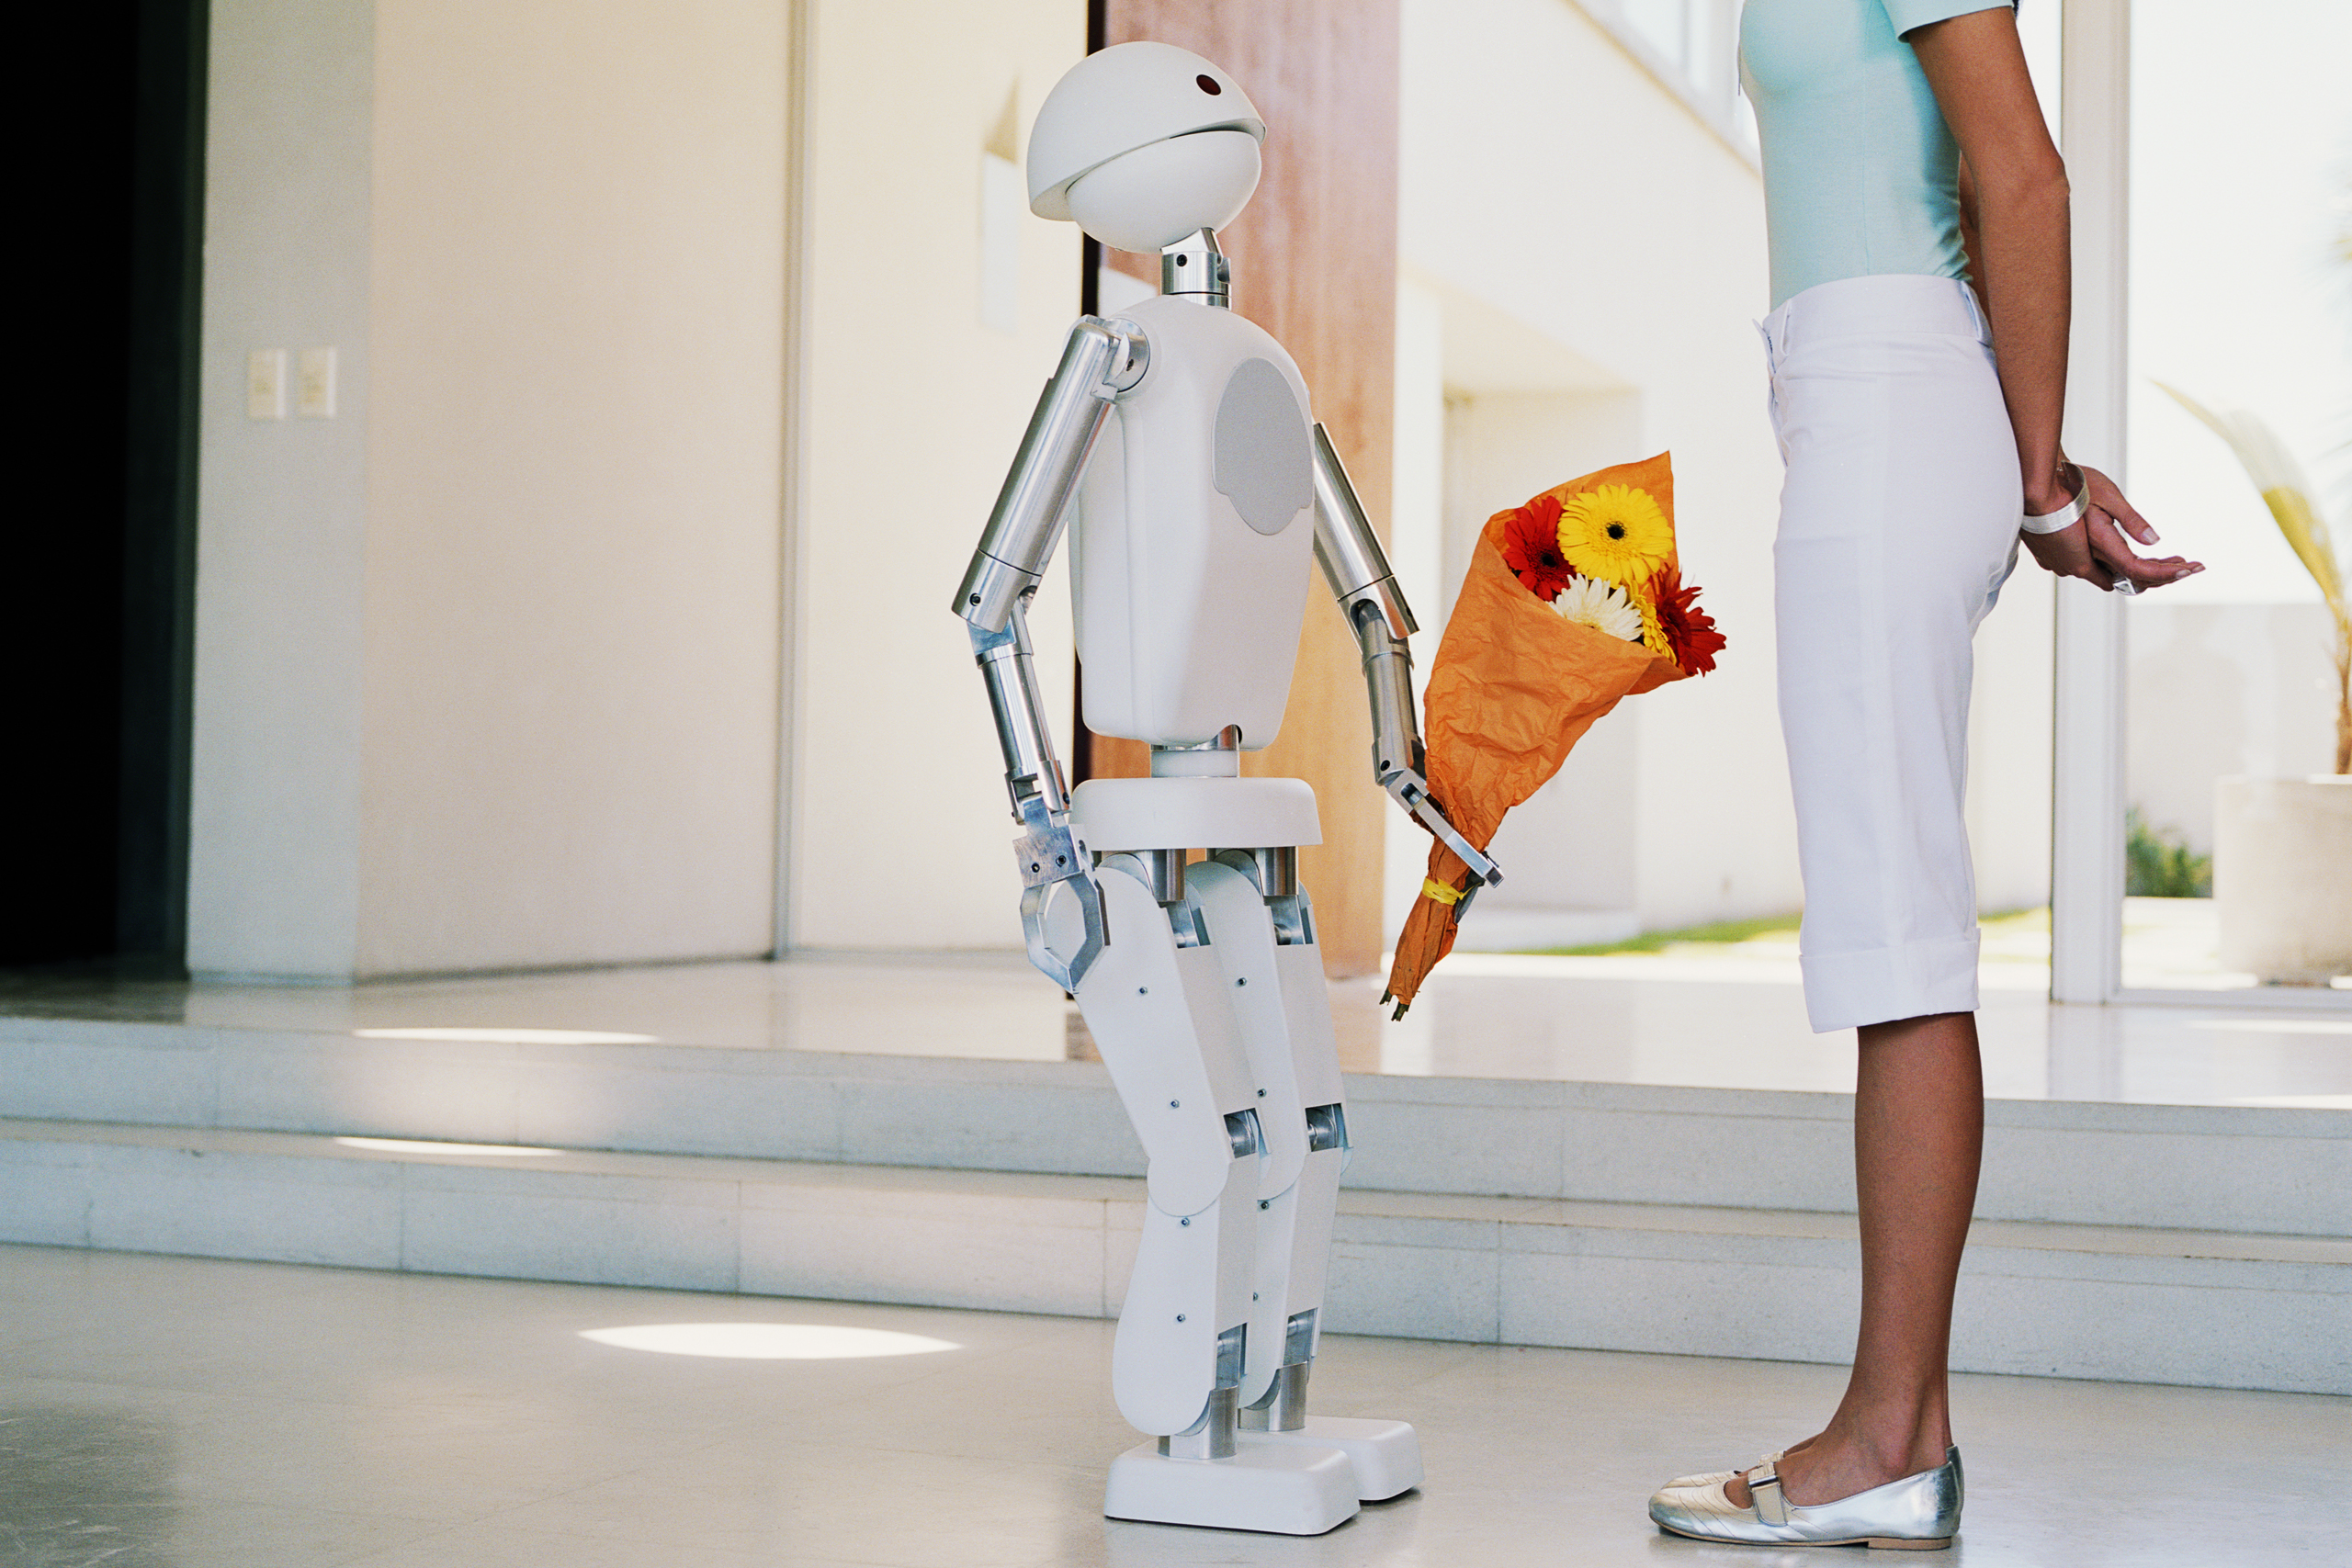 Robot giving bouquet of flowers to young woman in entryway, side view